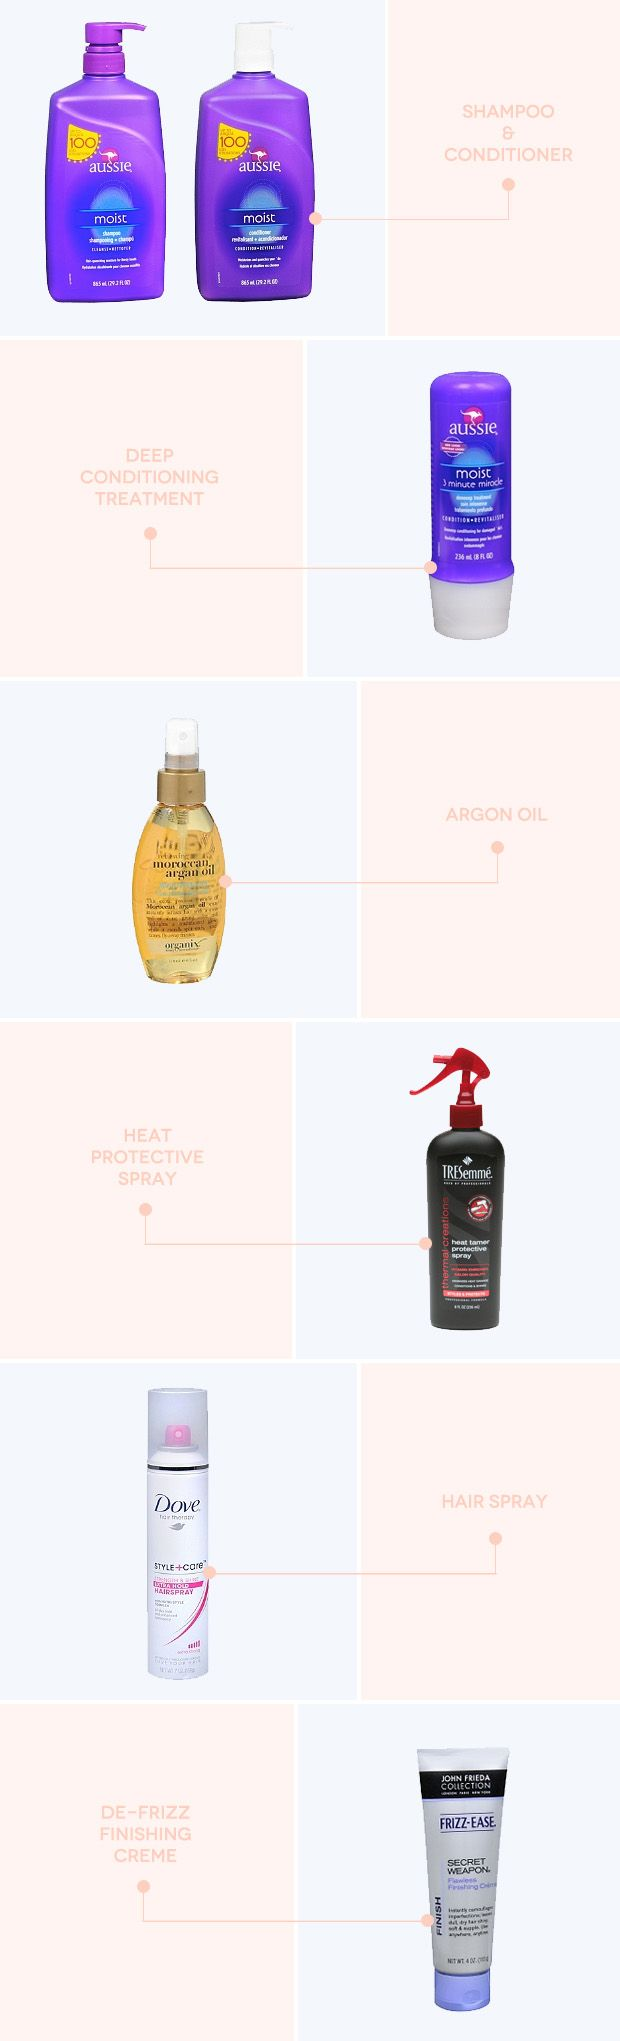 6 Must-Have Drugstore Hair Products- I will definitely vouch for the 3 Aussie products she recommends and I have been looking for a good hair protectant forever!